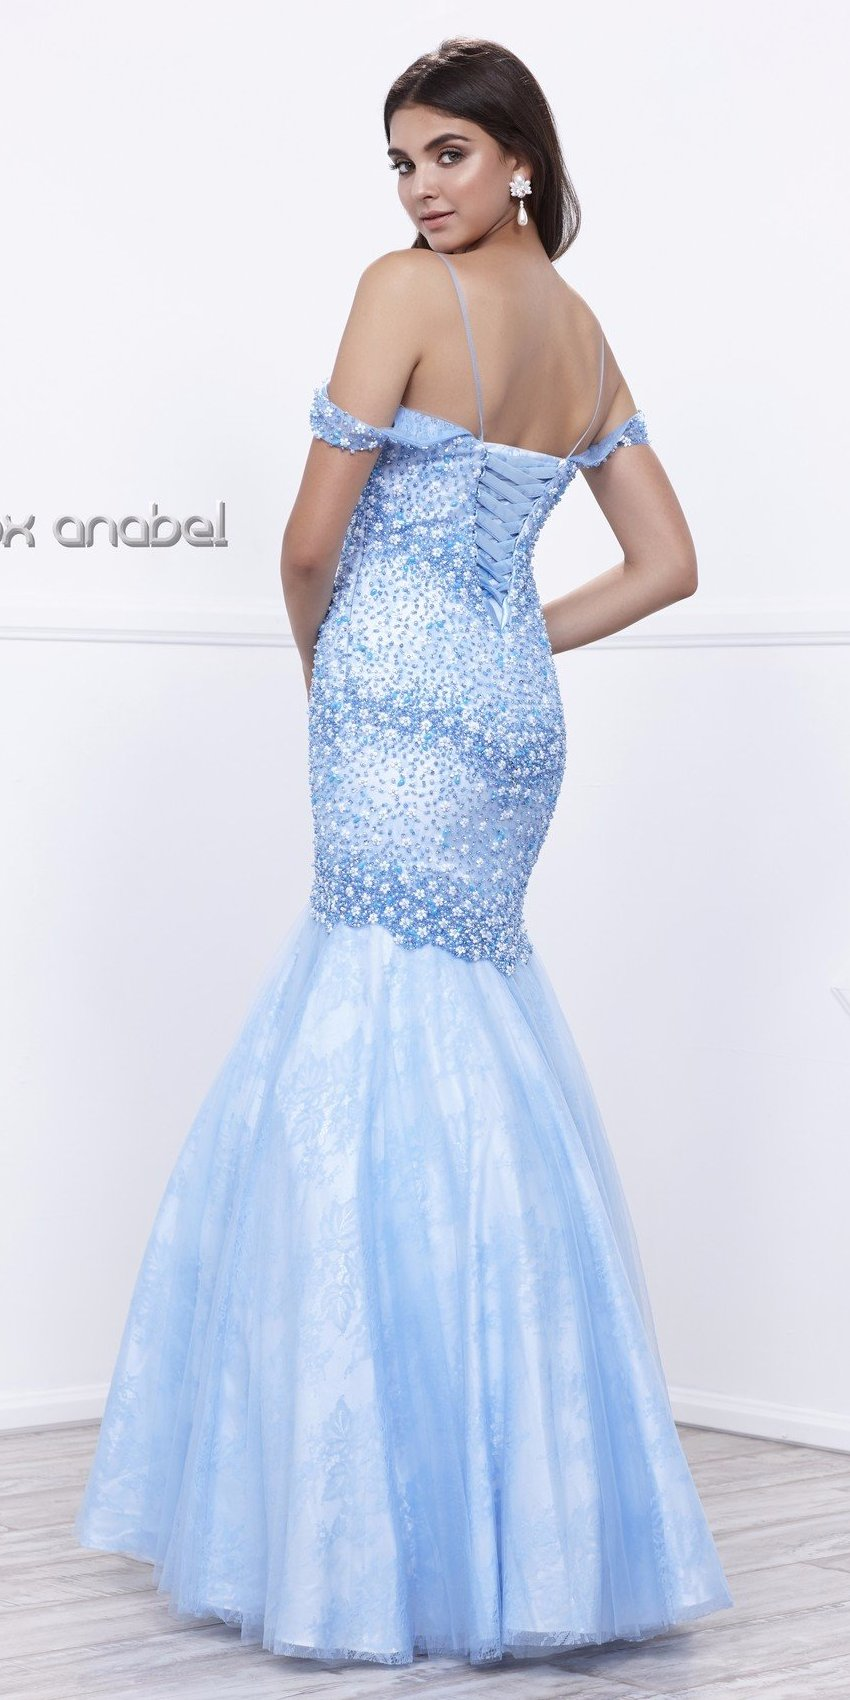 Off-Shoulder Embellished Mermaid Floor Length Prom Dress Ice Blue